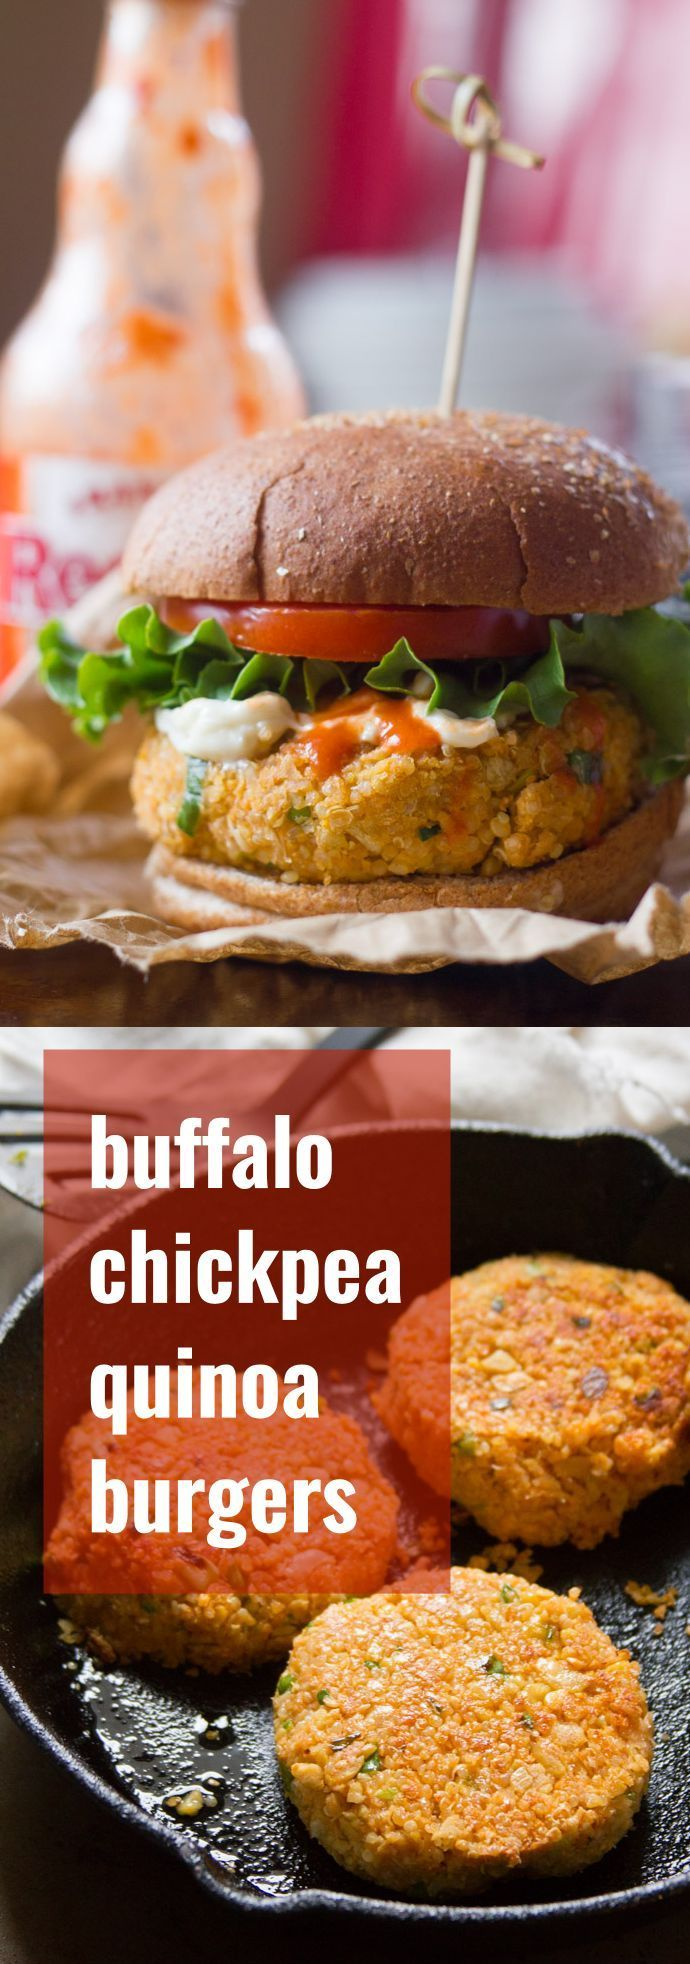 These spicy vegan Buffalo burgers are made with a hearty mix of chickpeas and quinoa that's spiked with kicky Buffalo sauce.